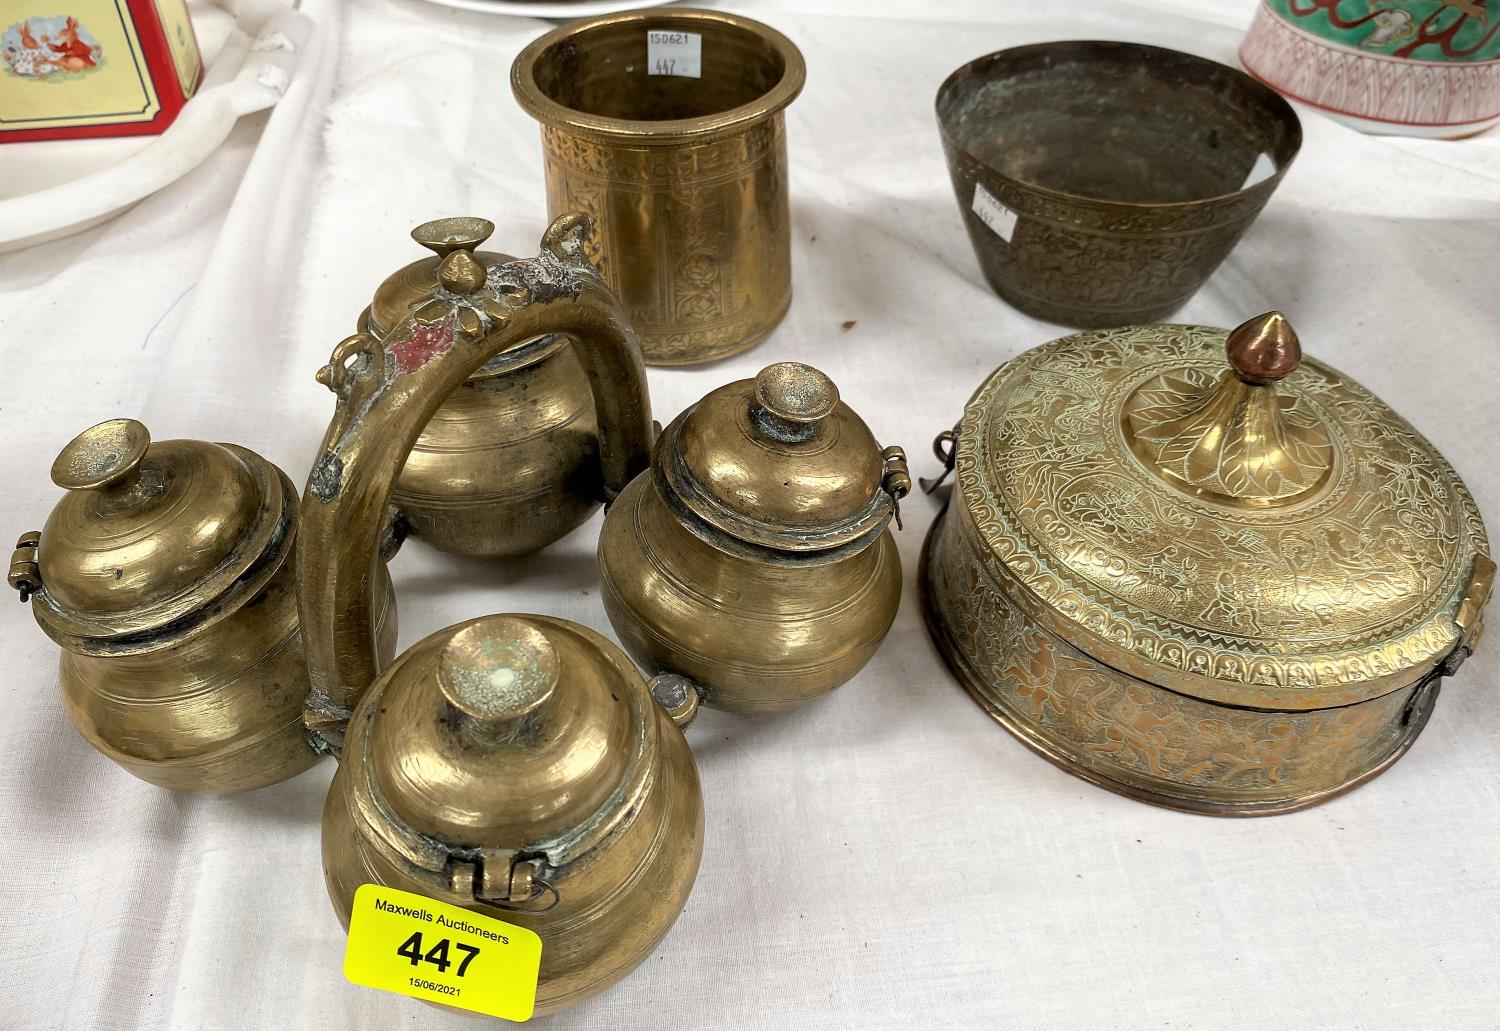 A Indian brass 4 section spice holder; a brass and copper Indian betel container and 2 Indian